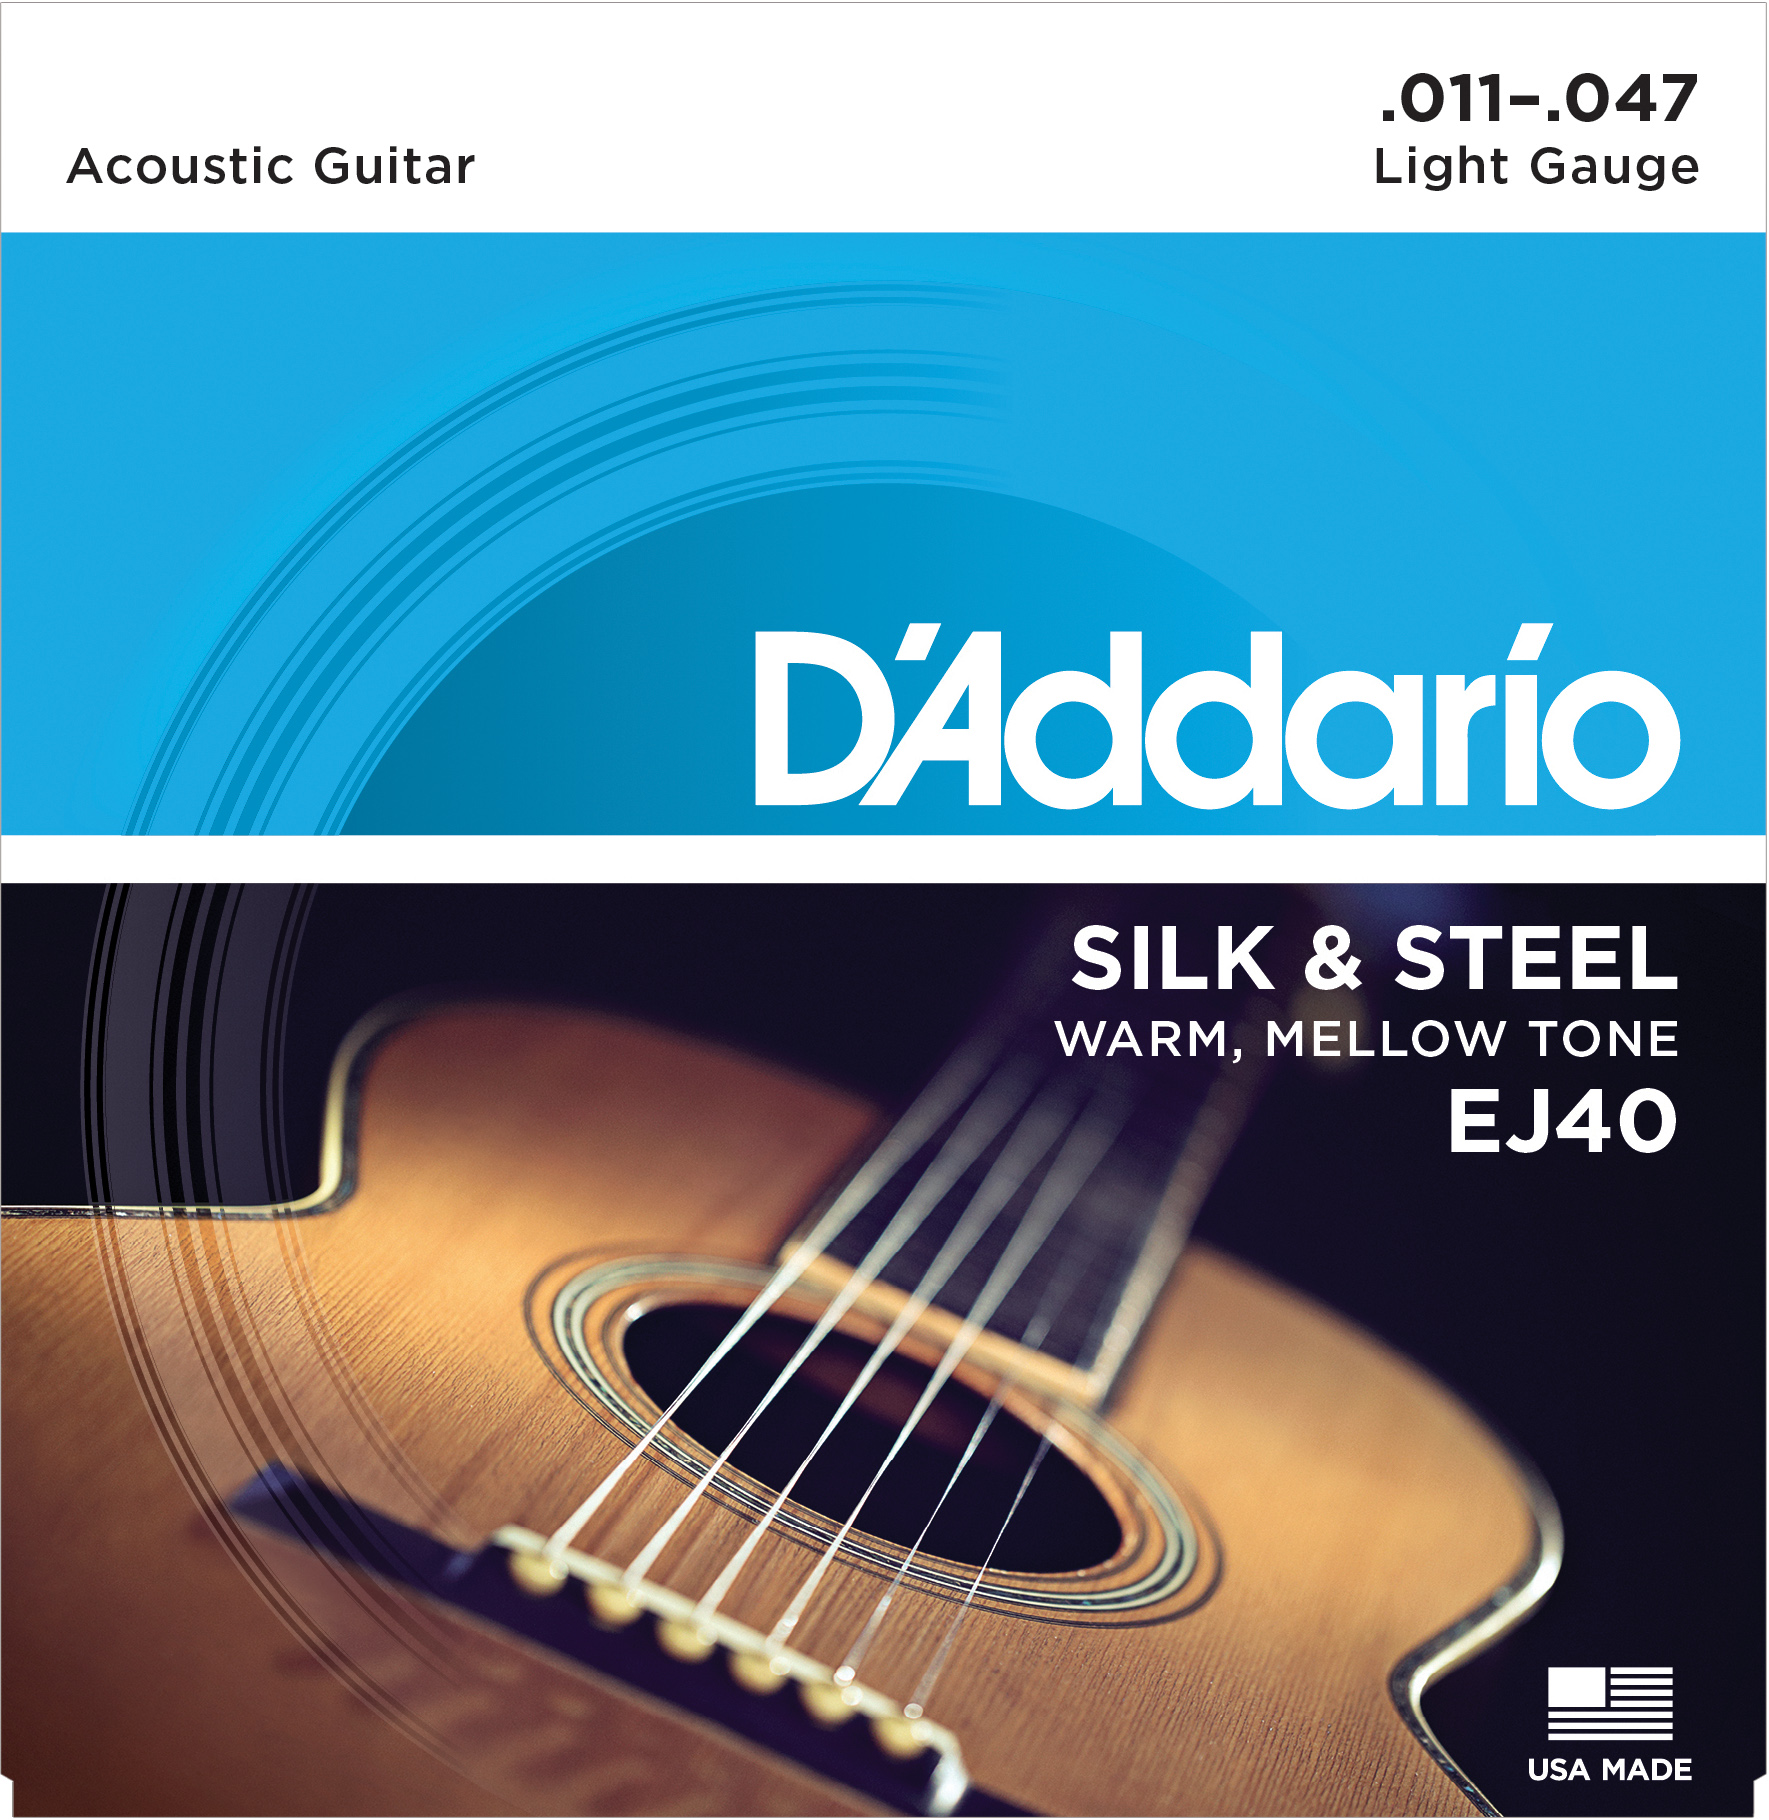 D'Addario folk strings